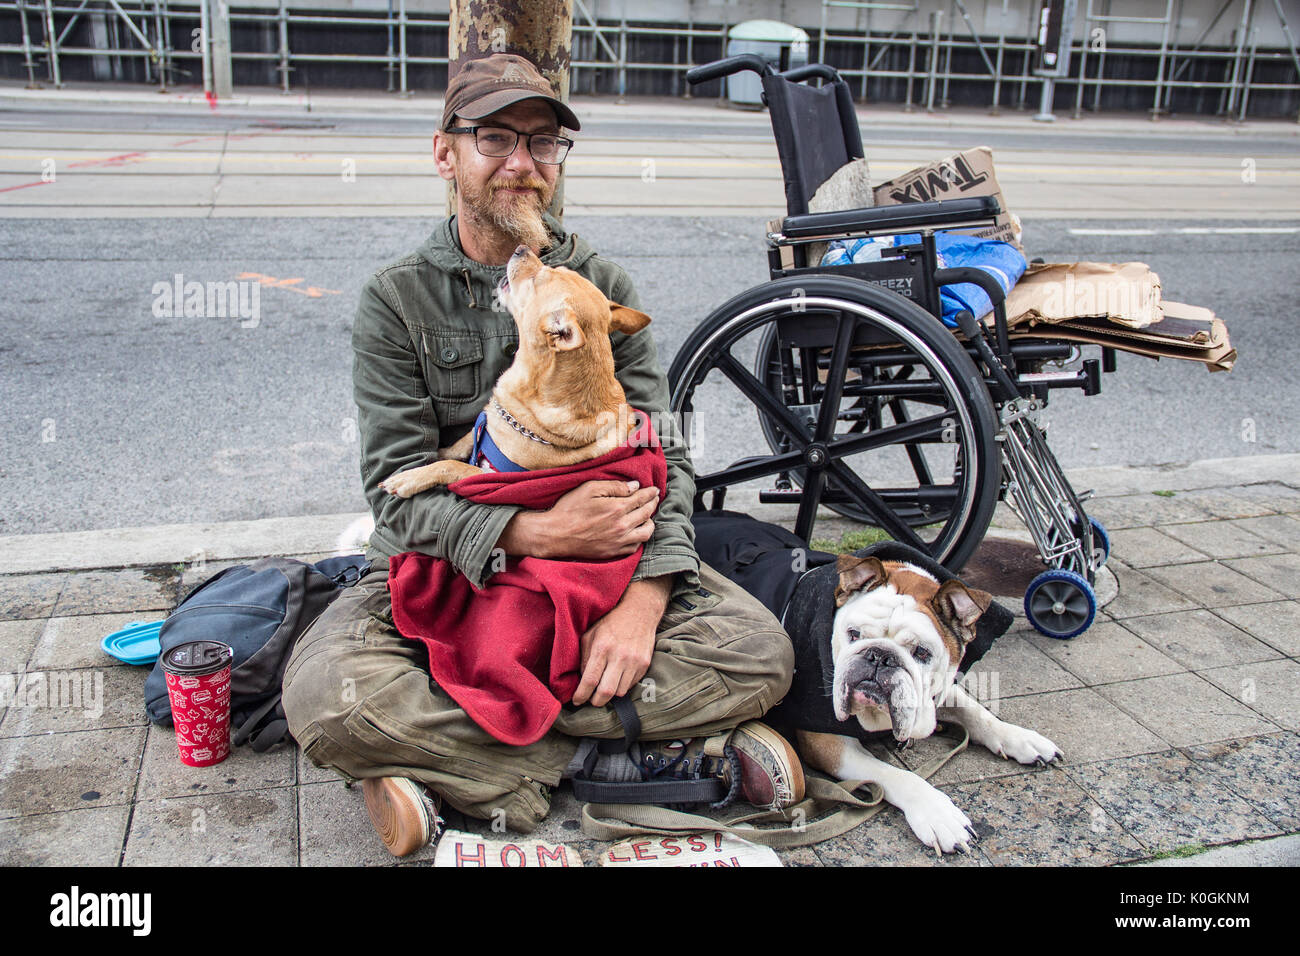 Street photography, a homeless man with dogs, urban scene, big city - Stock Image